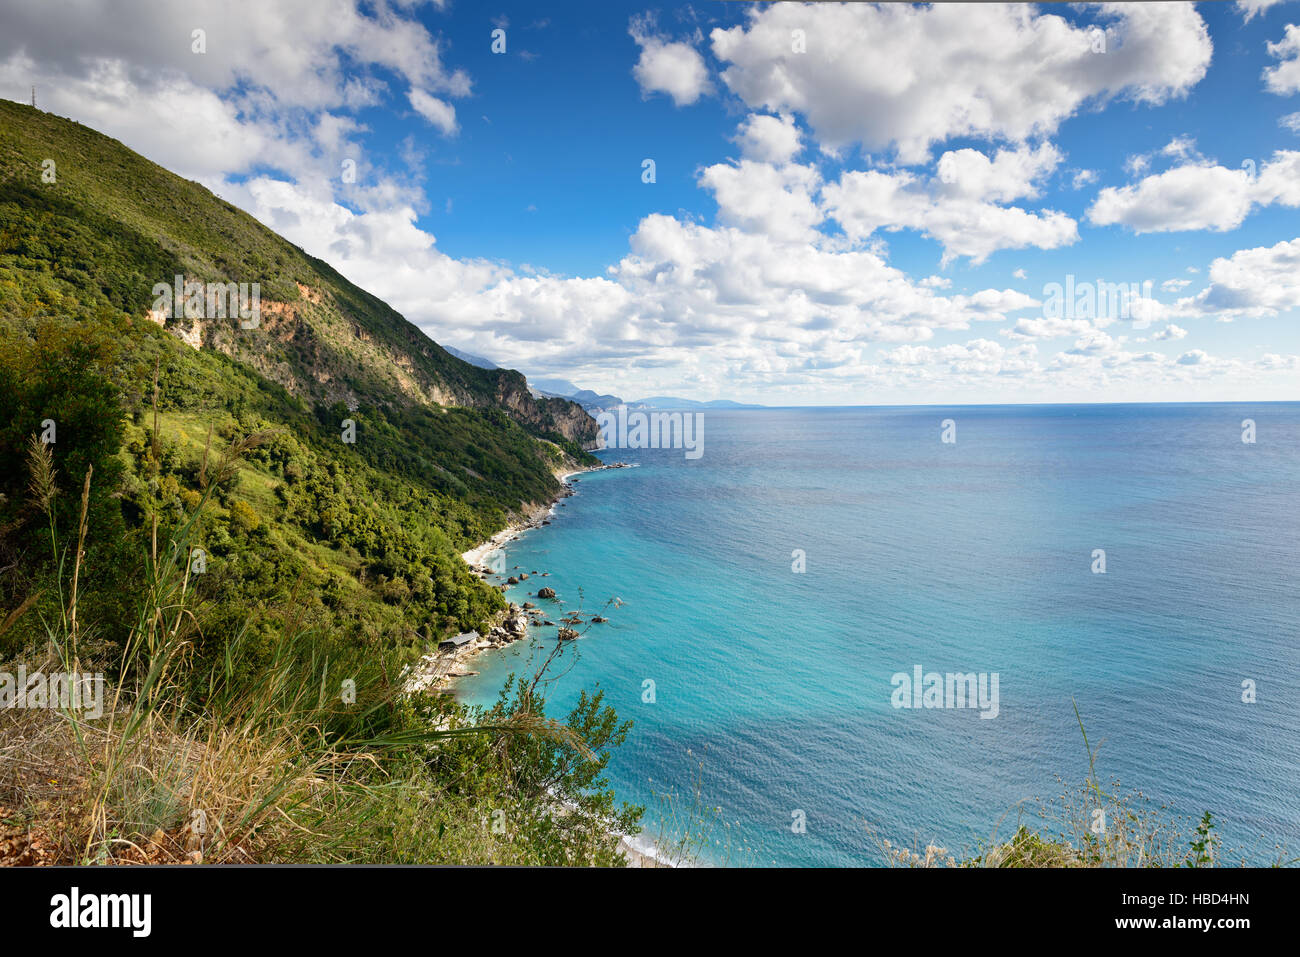 Mediterranean sea landscape near Budva, Montenegro, Europe. Stock Photo